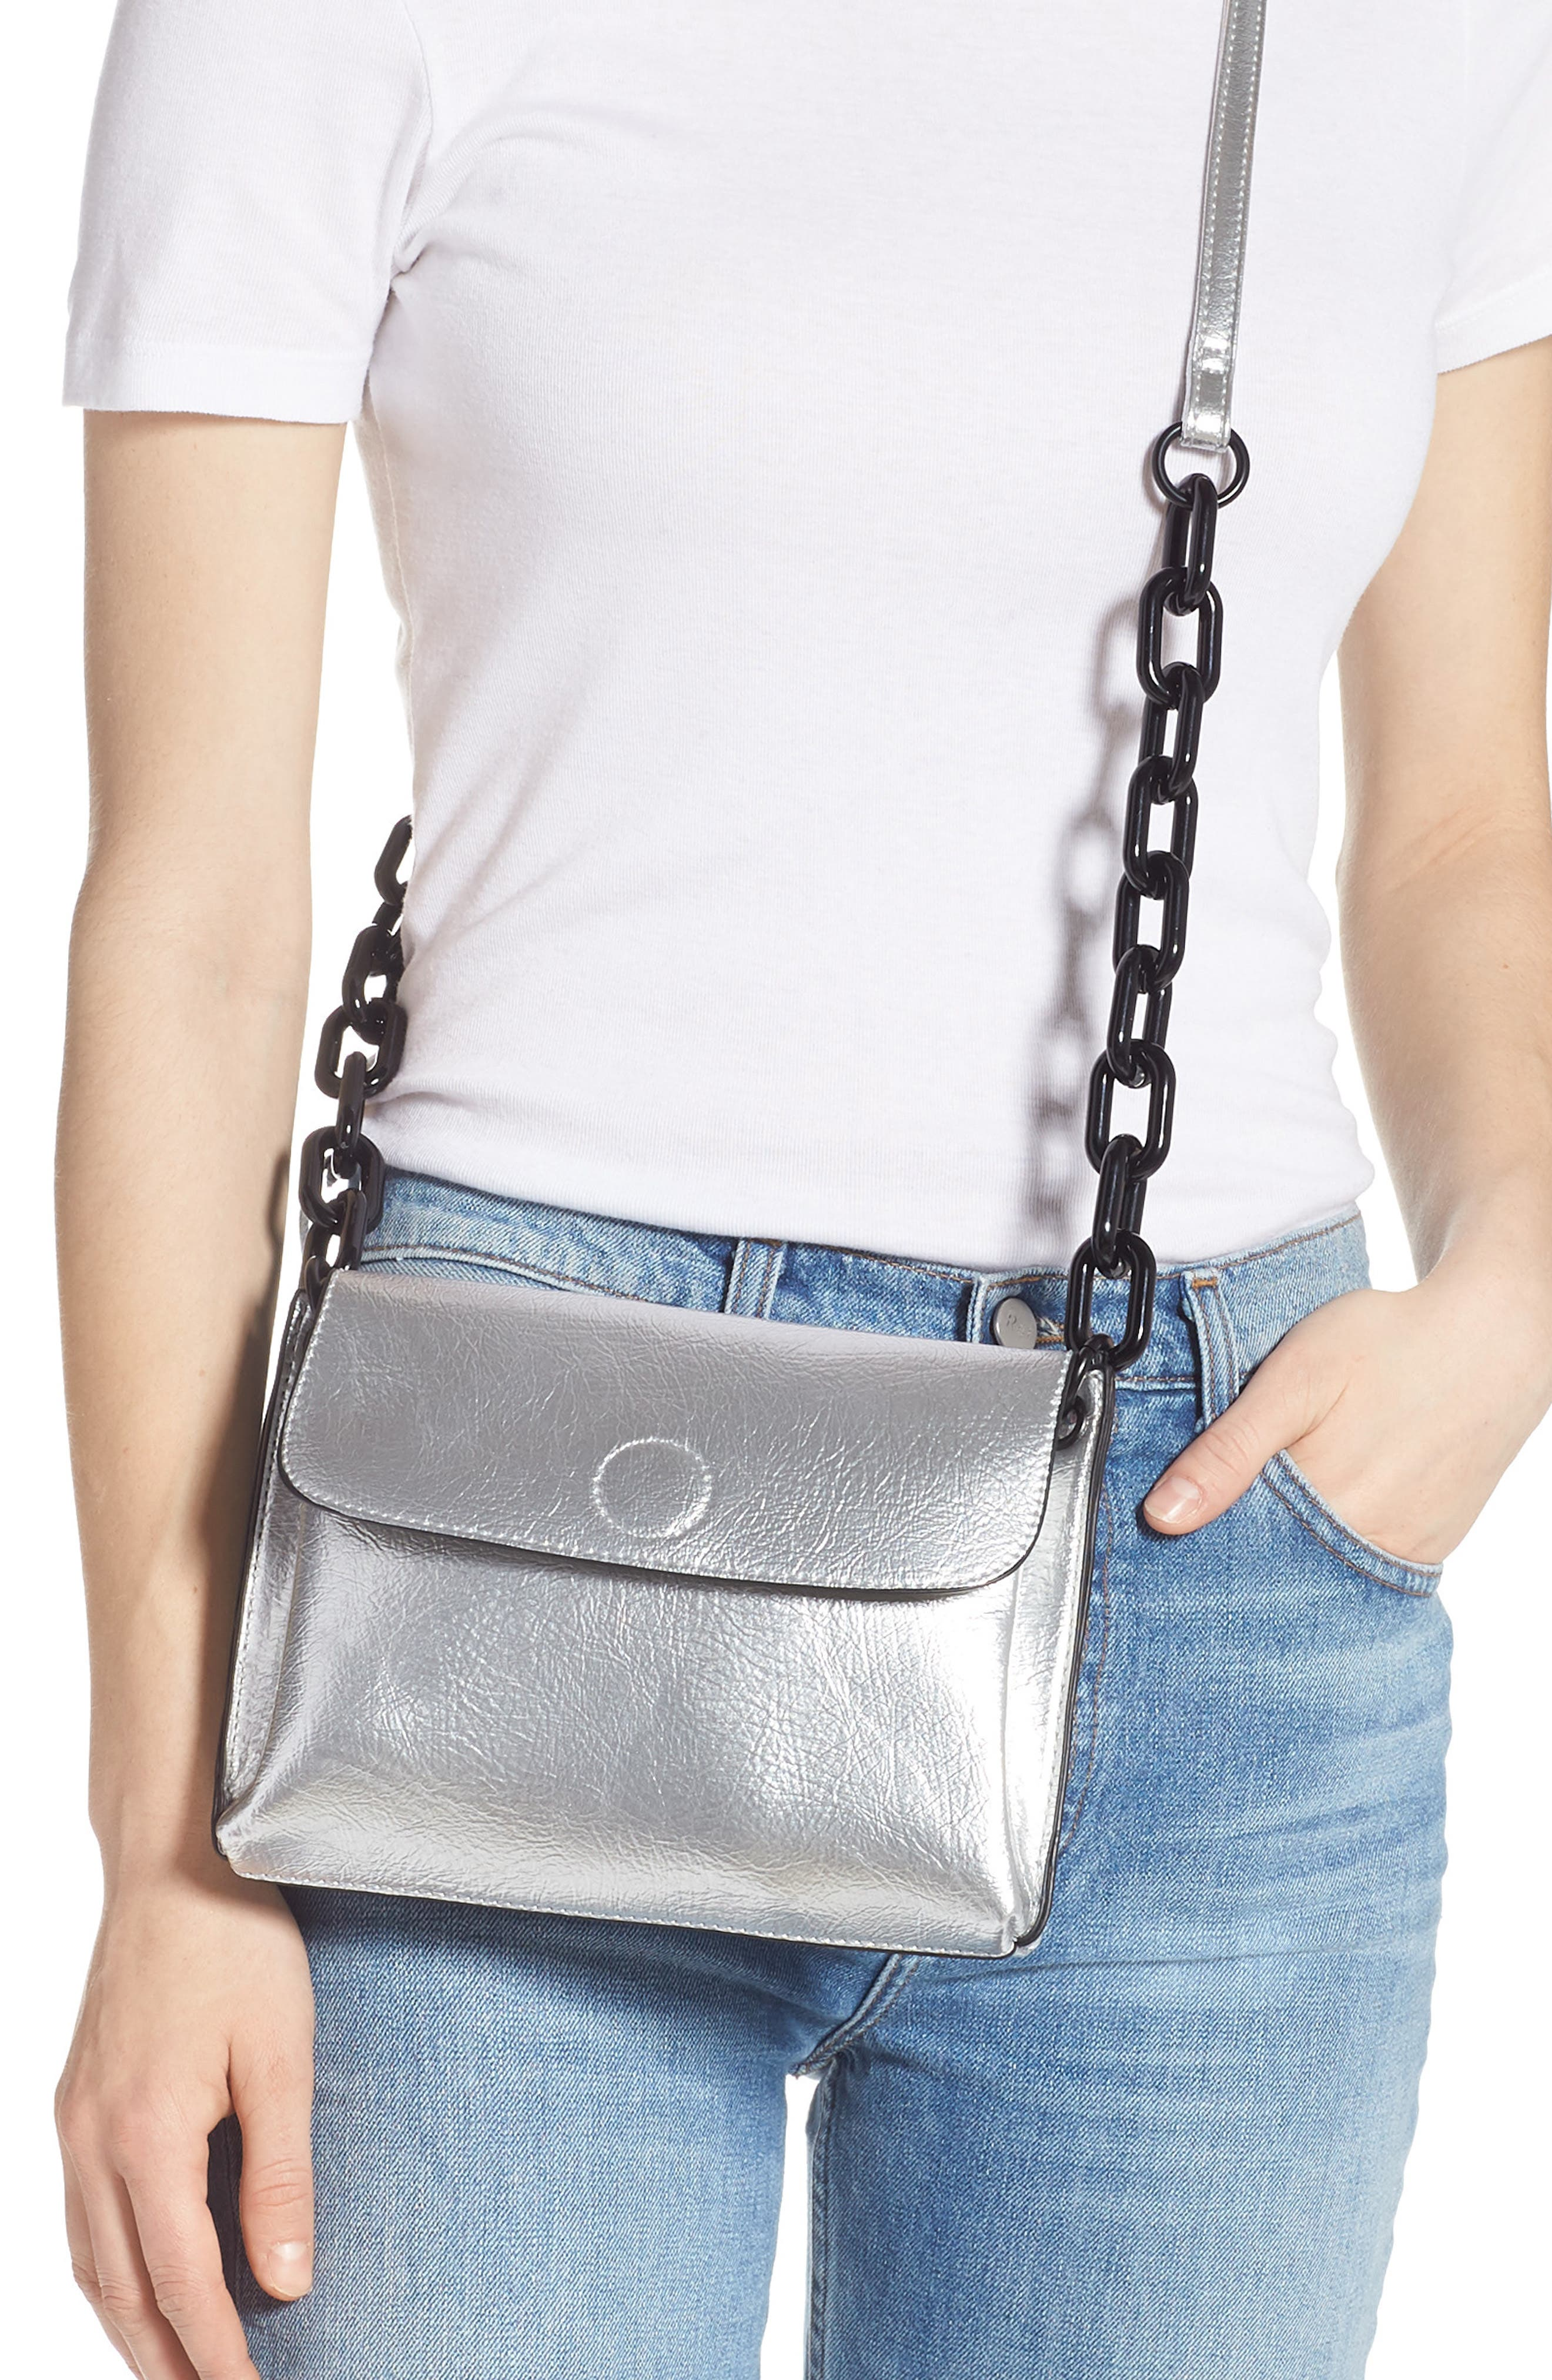 VIOLET RAY NEW YORK, Metallic Faux Leather Crossbody Bag, Alternate thumbnail 2, color, SILVER